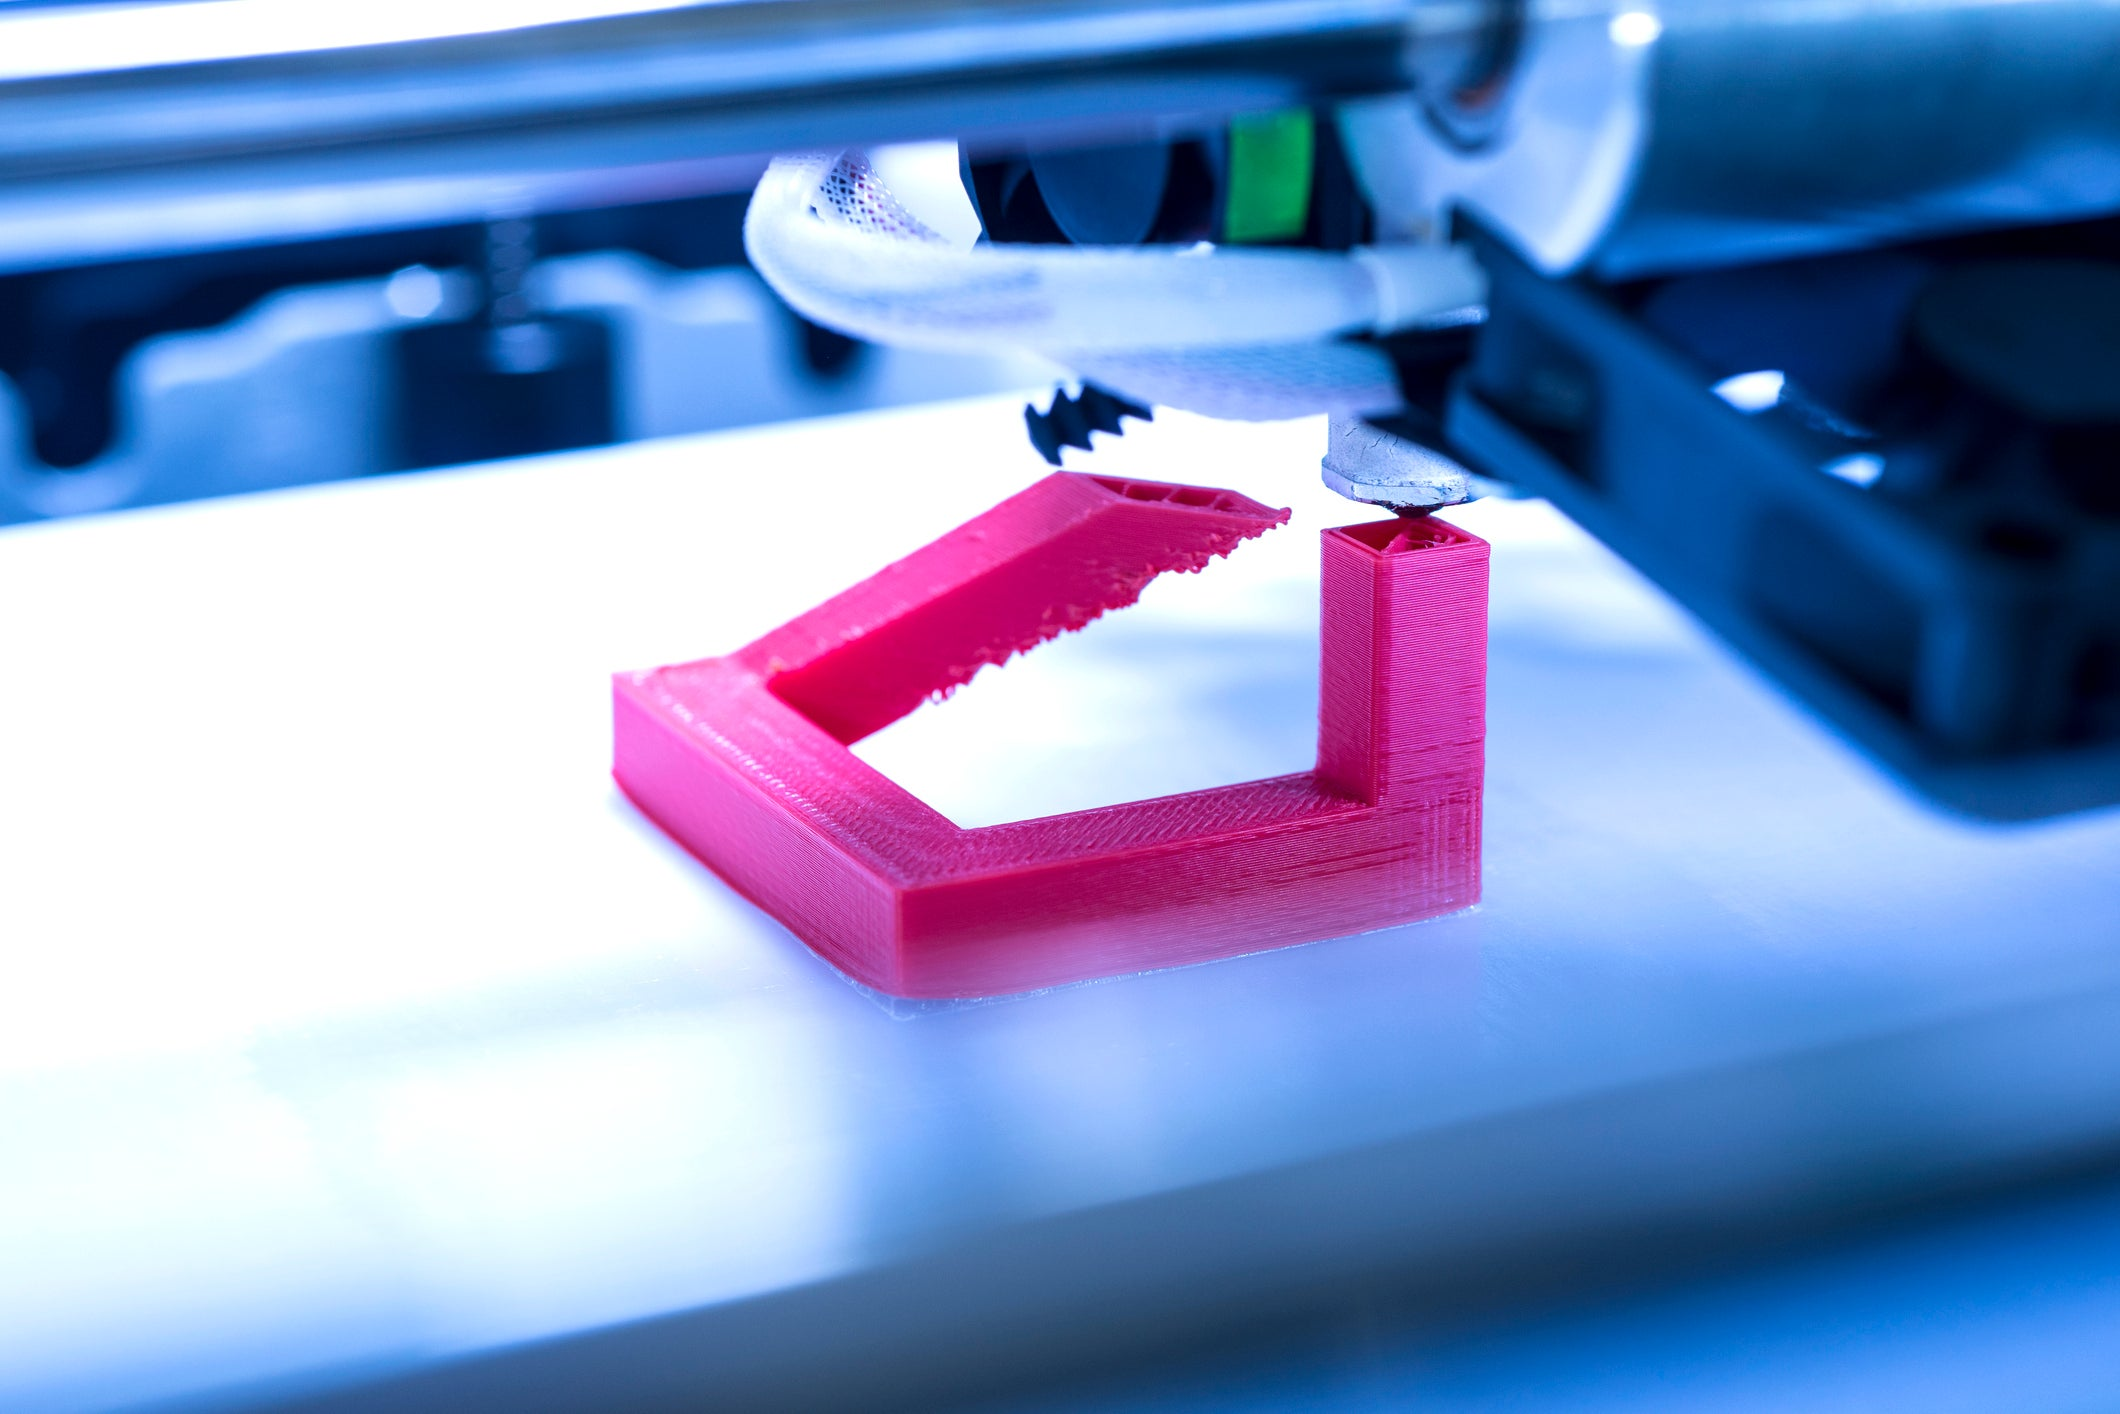 Close-up of a 3D printer printing a fuschia-colored plastic object.